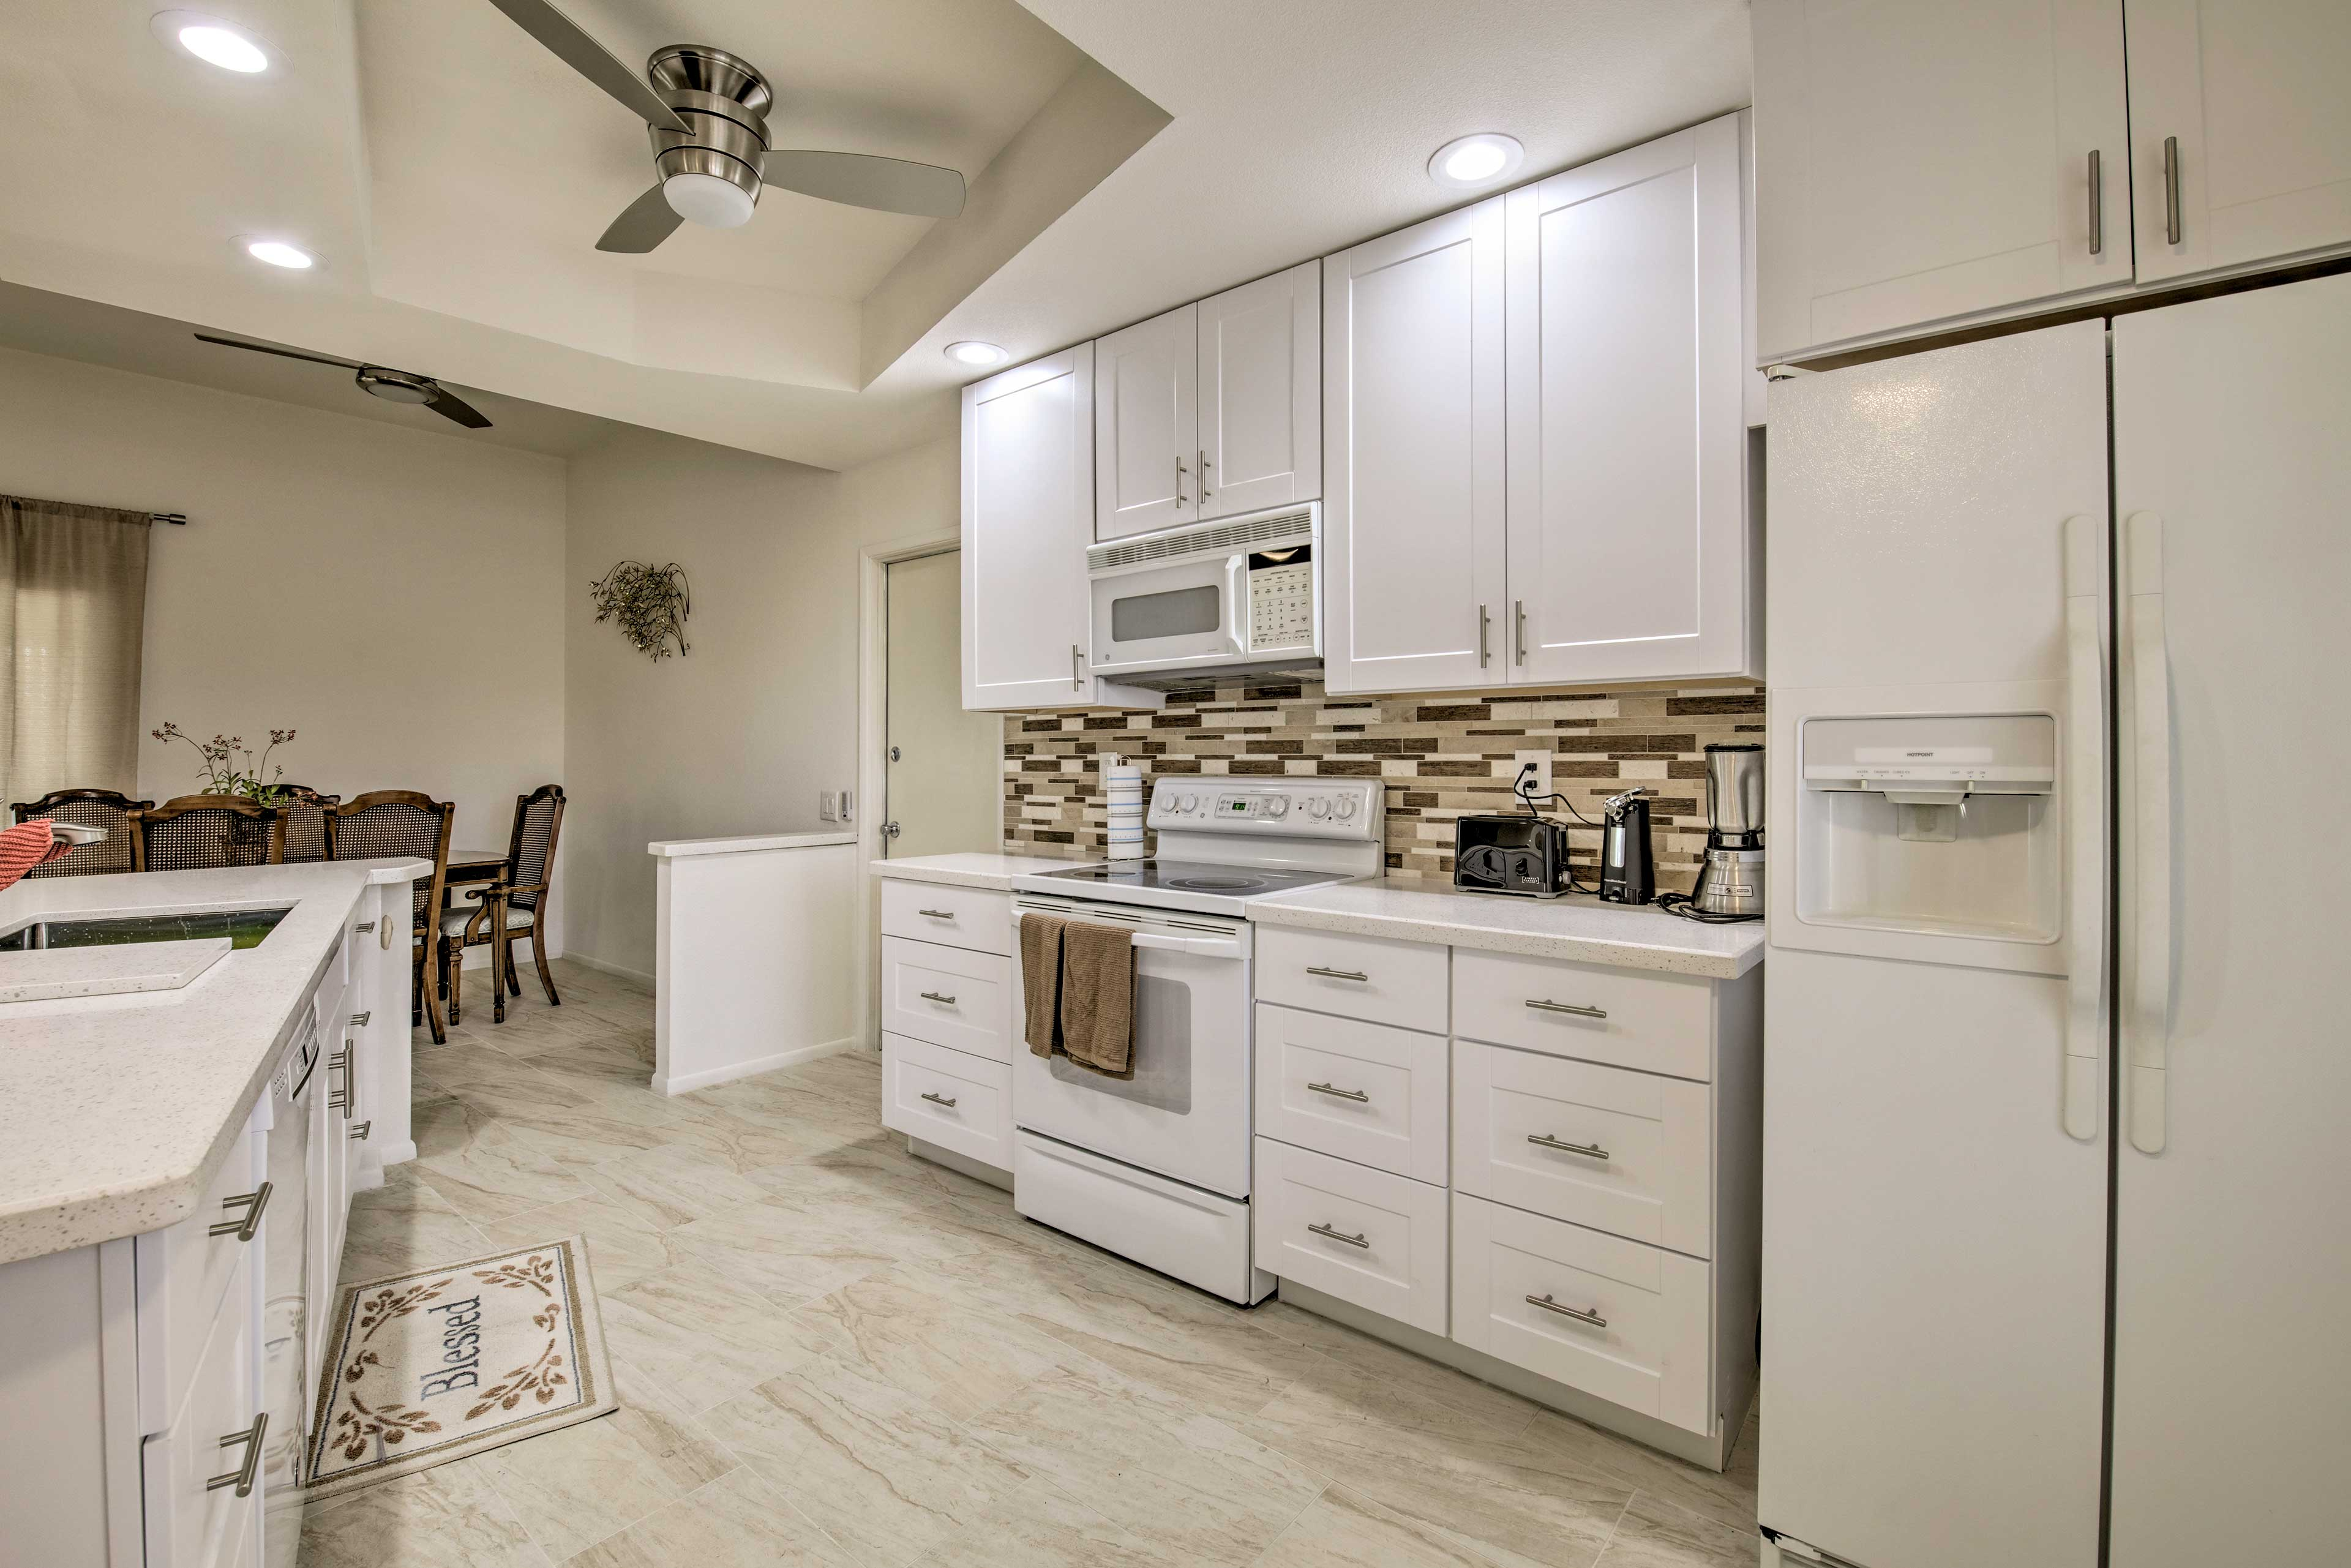 Head to the fully equipped kitchen for a home-cooked meal.